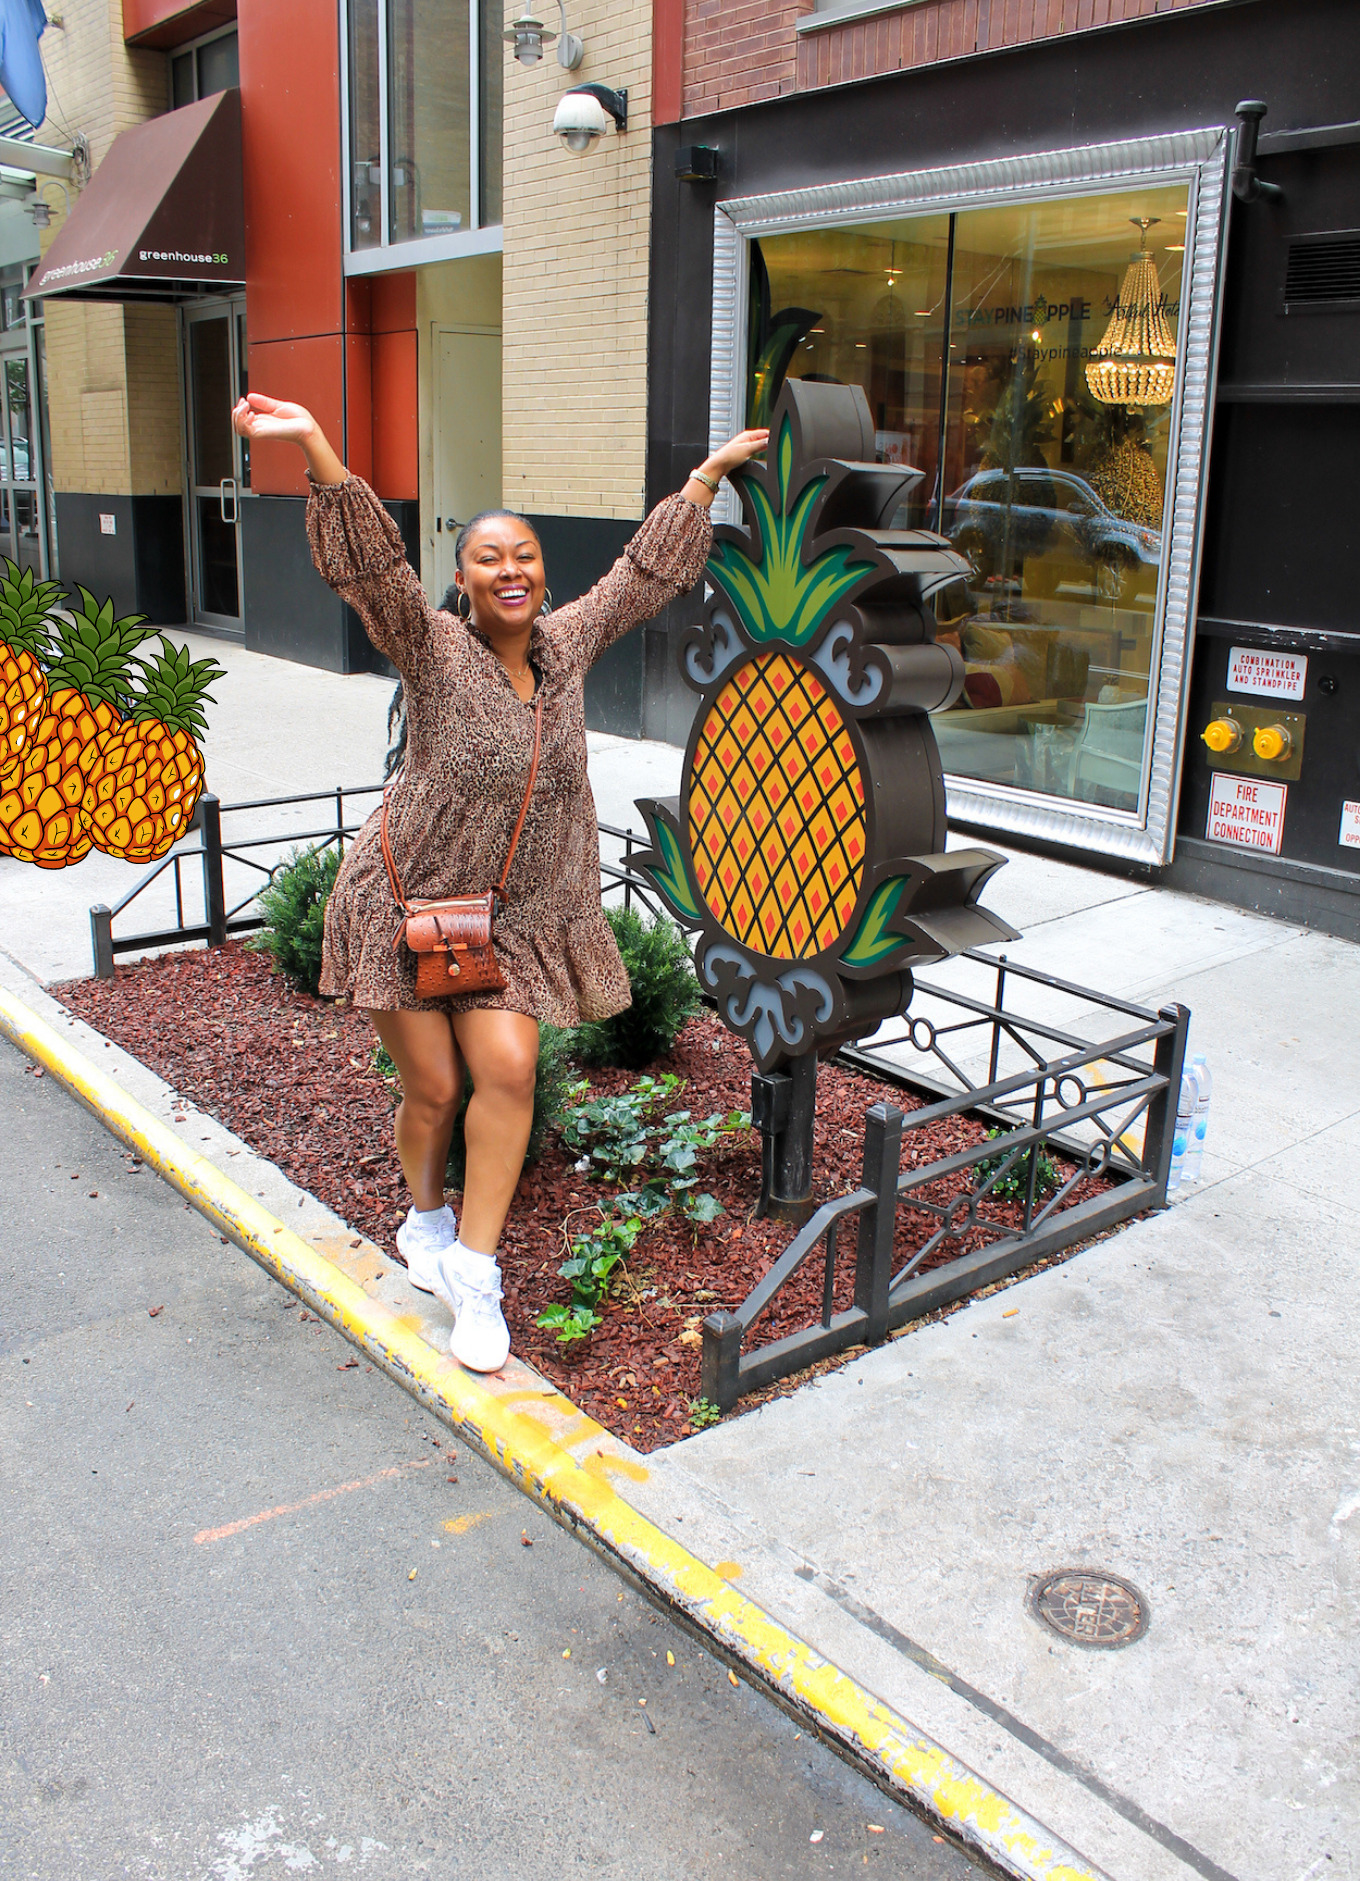 This Bahamian Gyal blogger Rogan Smith poses in front of the entrance to StayPineapple in New York City